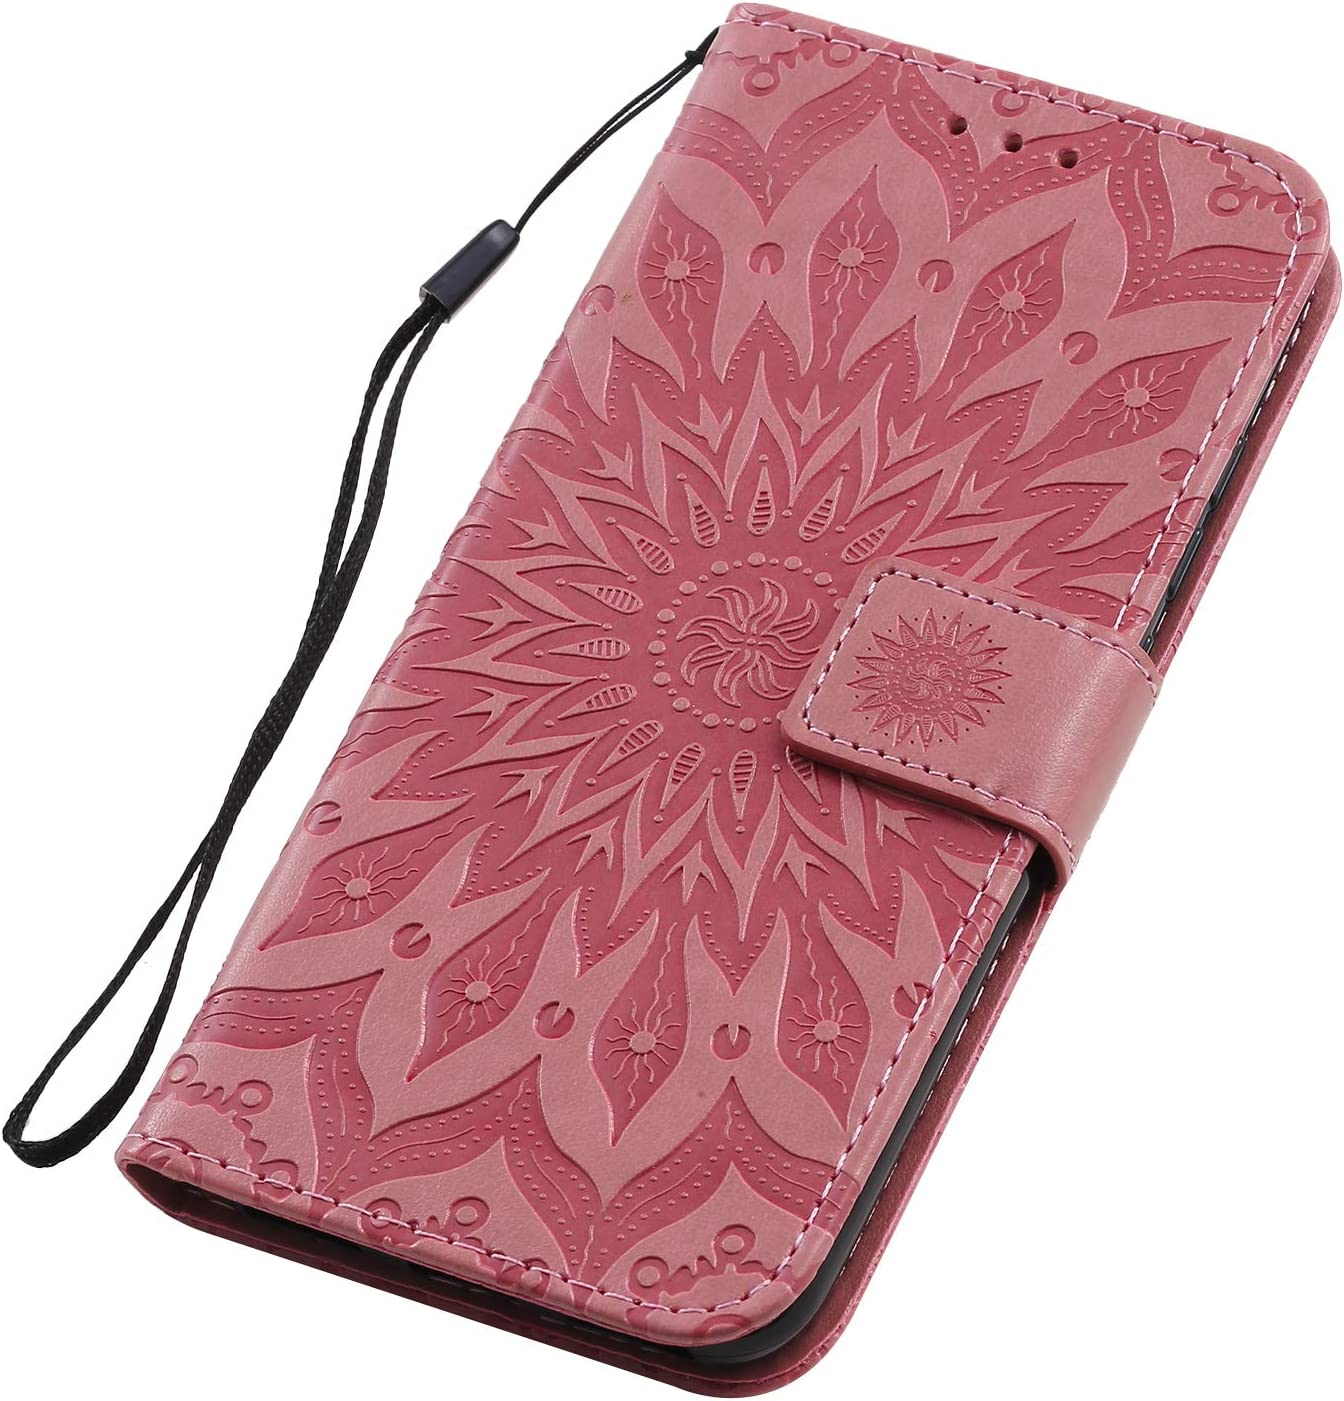 NEKTU020500 Hot Pink Shockproof Leather Flip Cover Case for Xiaomi MiA3 NEXCURIO Wallet Case for Xiaomi Mi A3 with Card Holder Side Pocket Kickstand